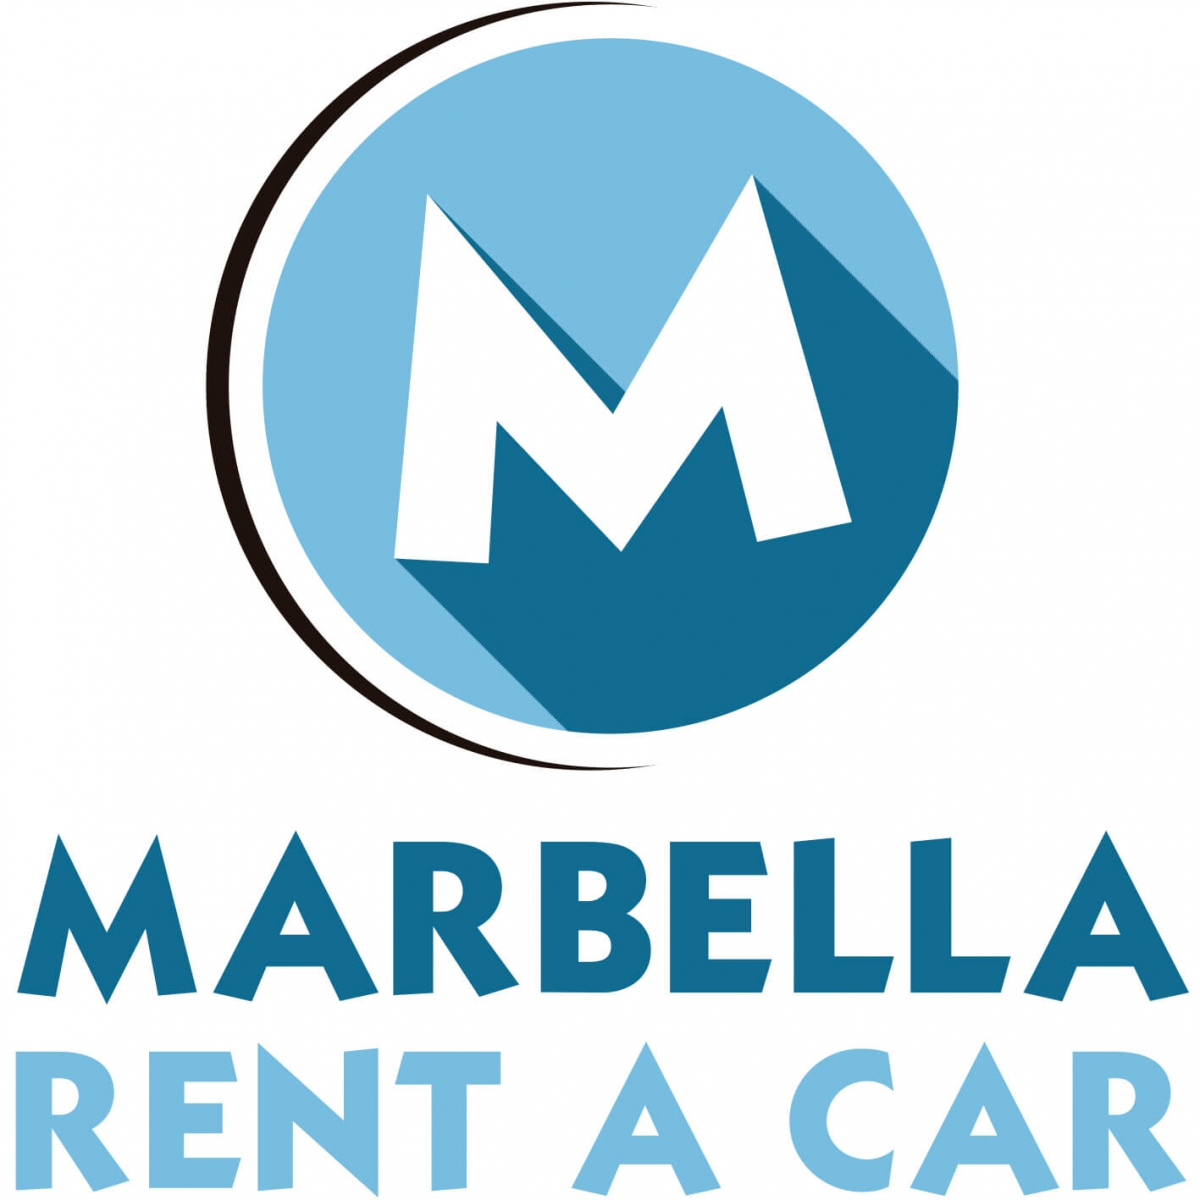 Marbella Rent a Car